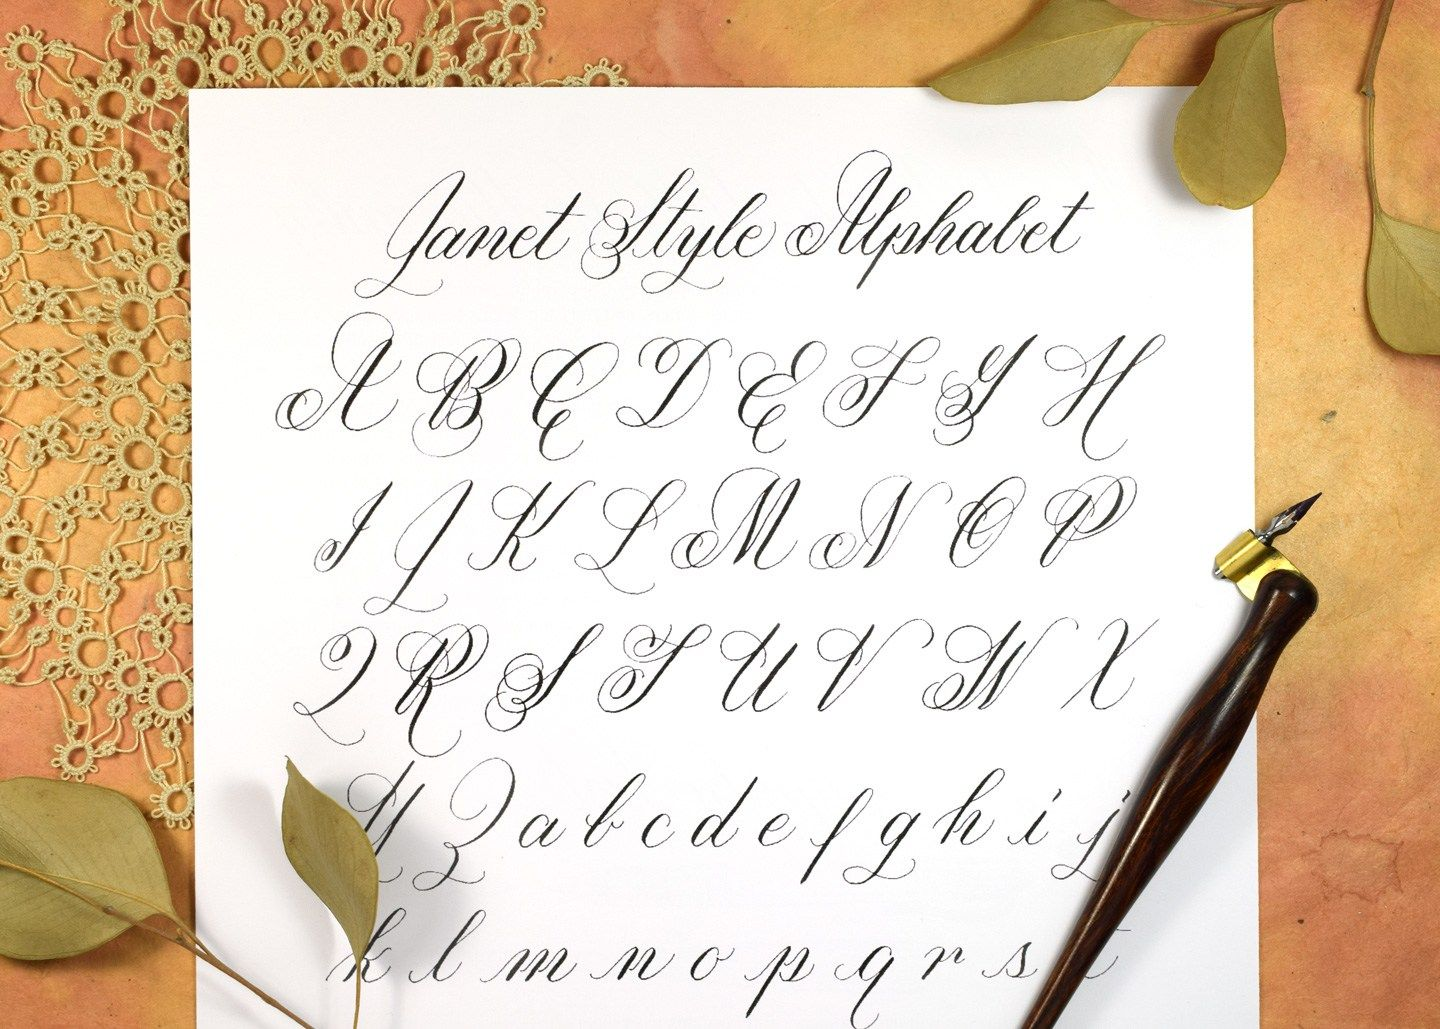 5 Suggestions For Condensed Calligraphy Practice